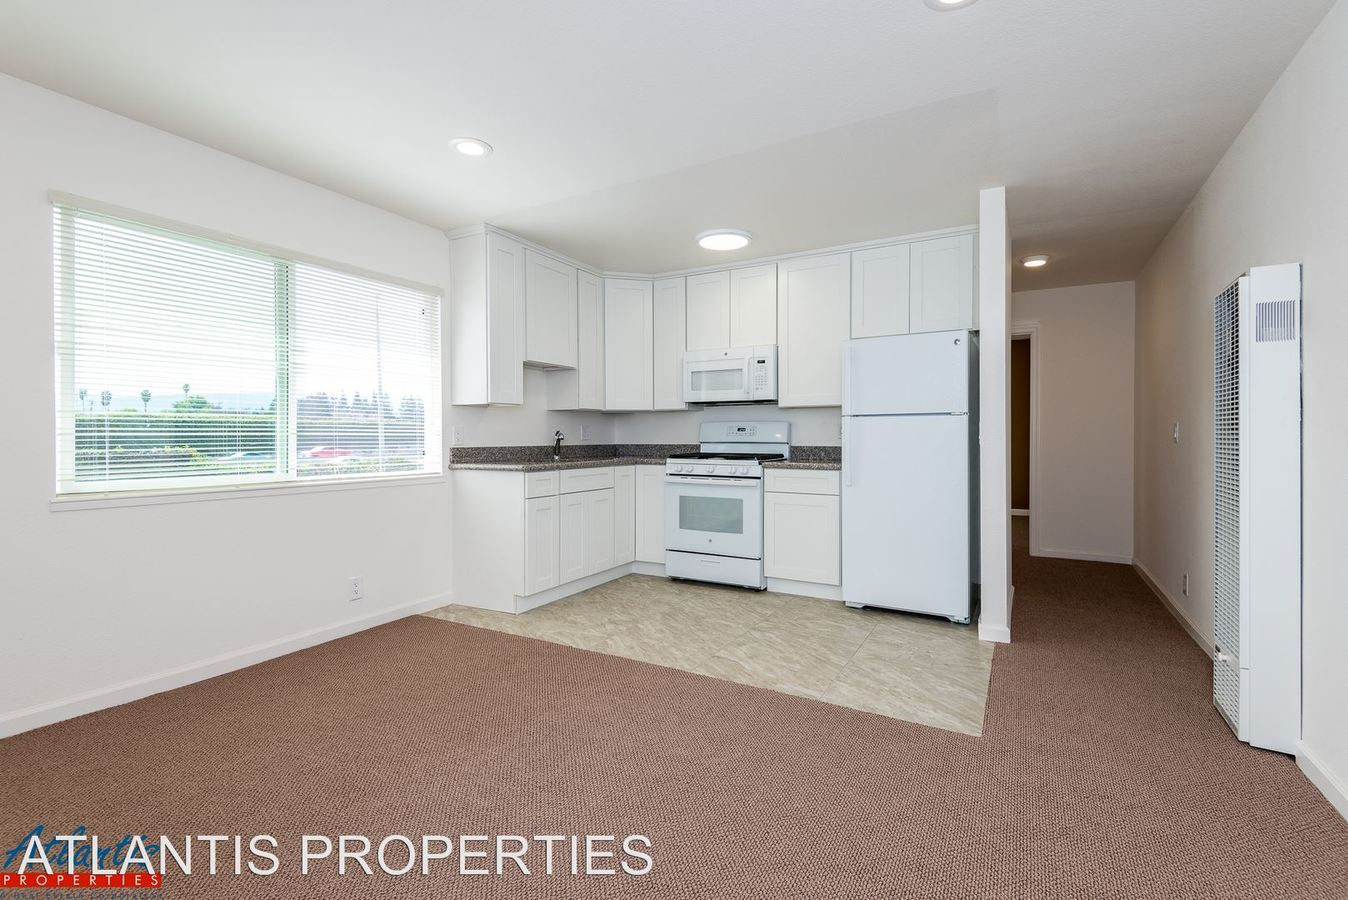 1 Bedroom 1 Bathroom Apartment for rent at 365 W. Weddell Drive in Sunnyvale, CA